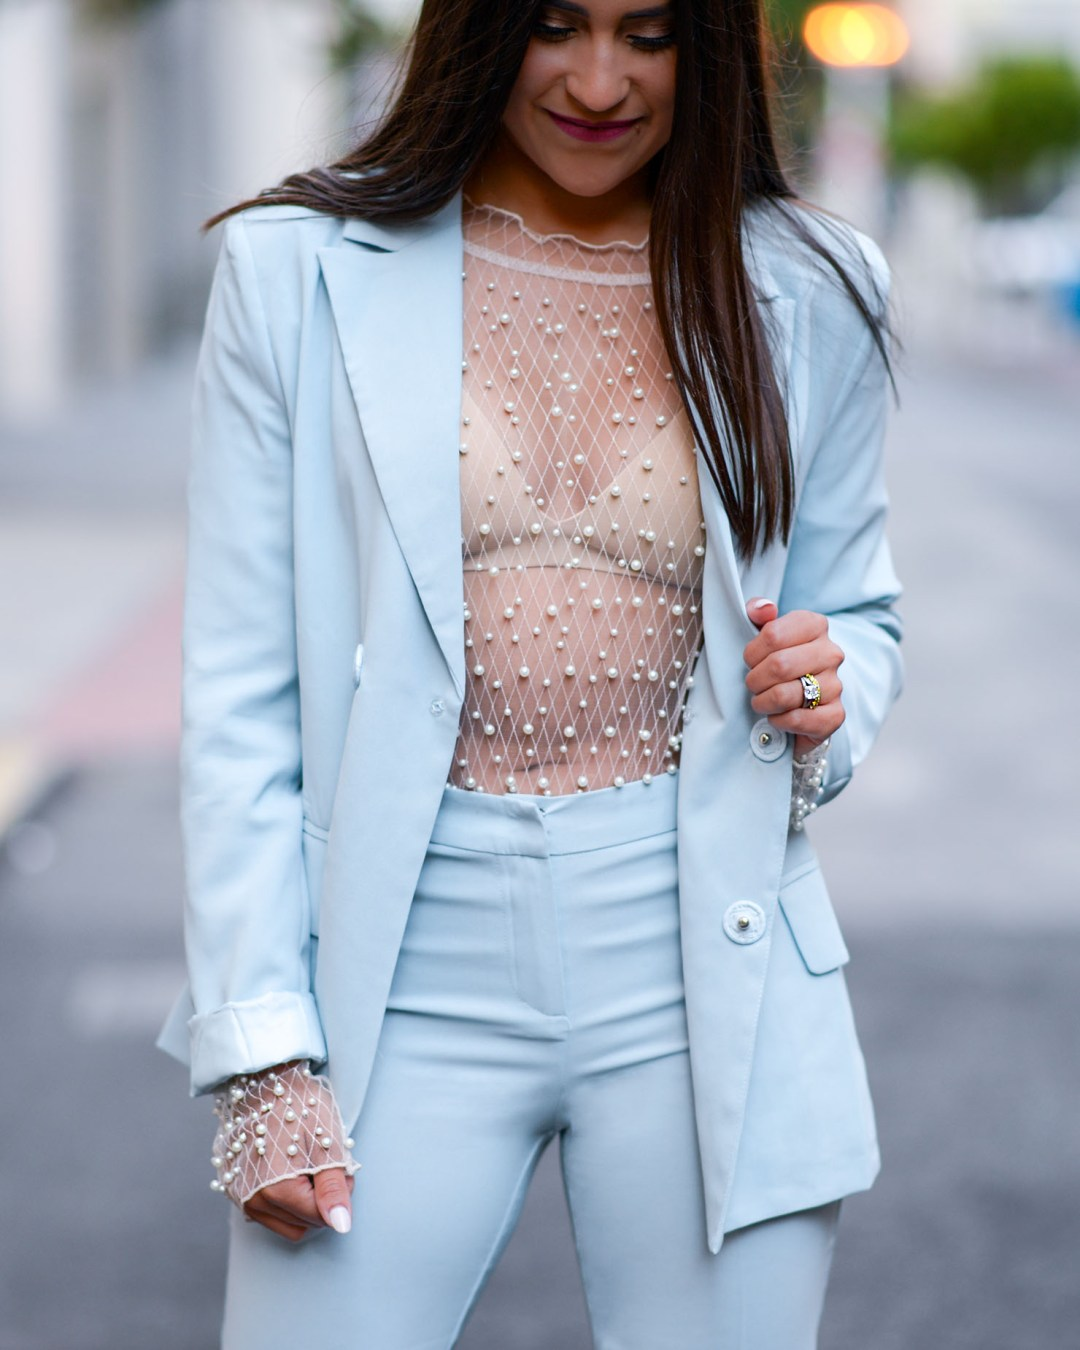 Lifestyle blogger Kelsey Kaplan of Kelsey Kaplan Fashion wearing blue suit and pearl beaded bodysuit